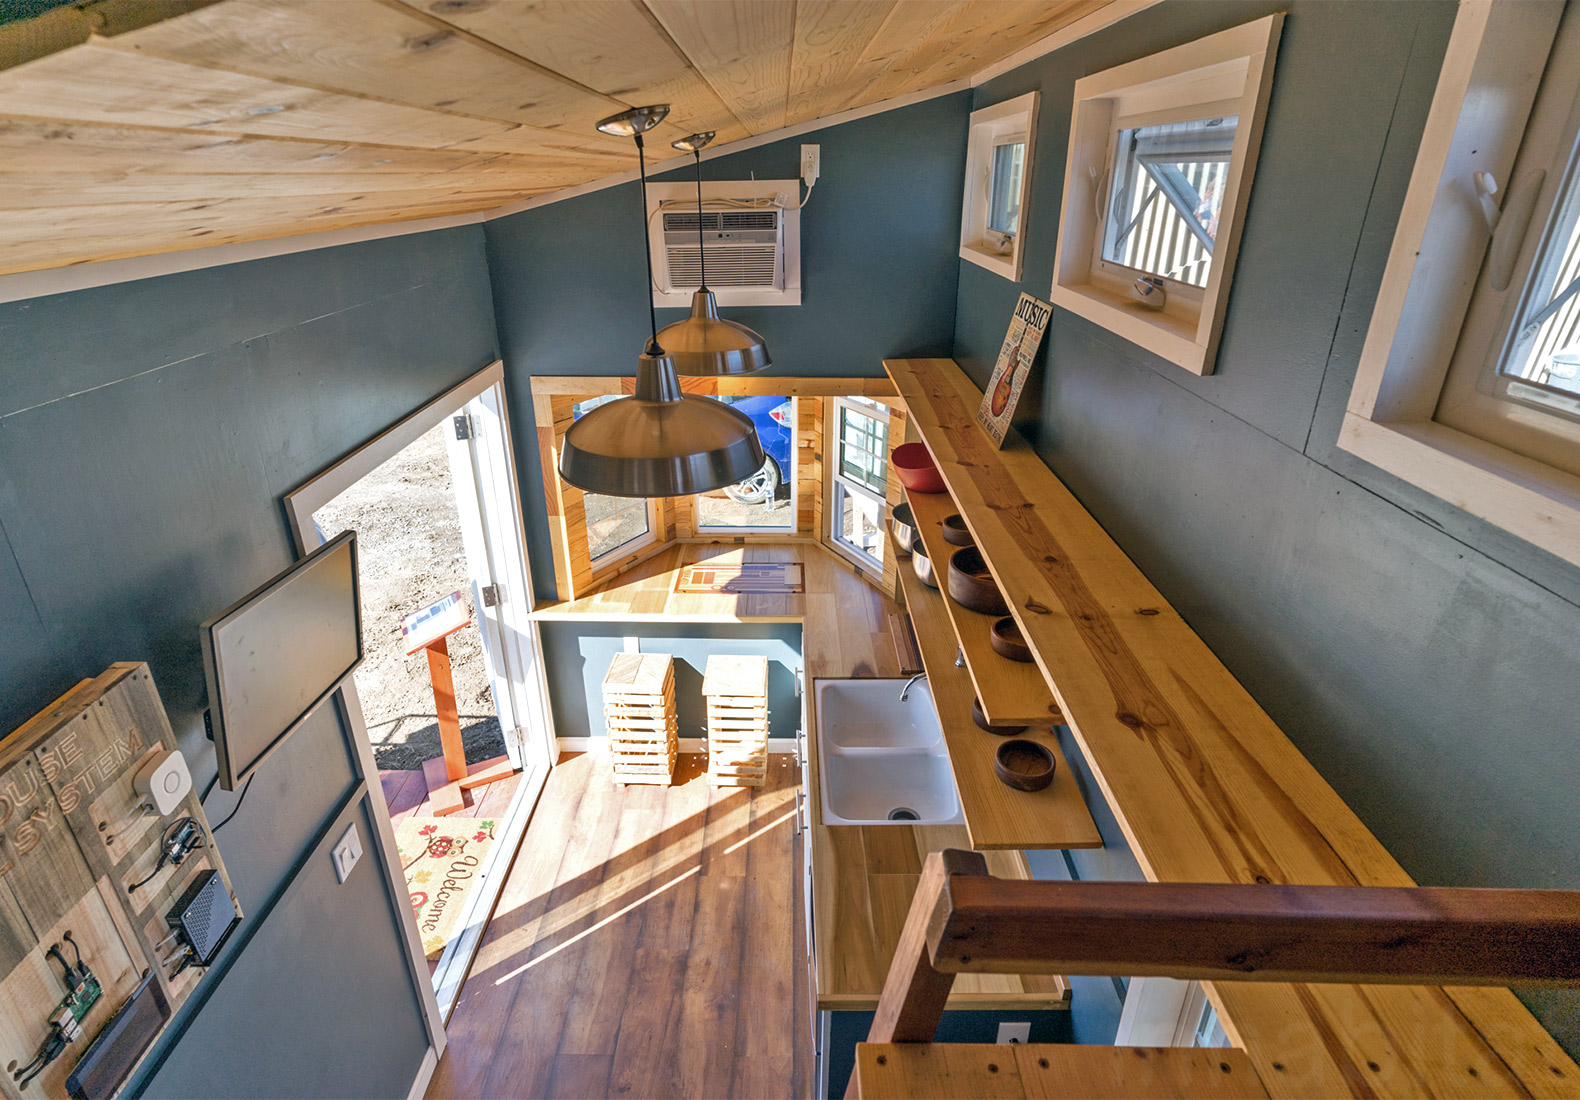 Student Built Solar Powered Tiny Home Represents New